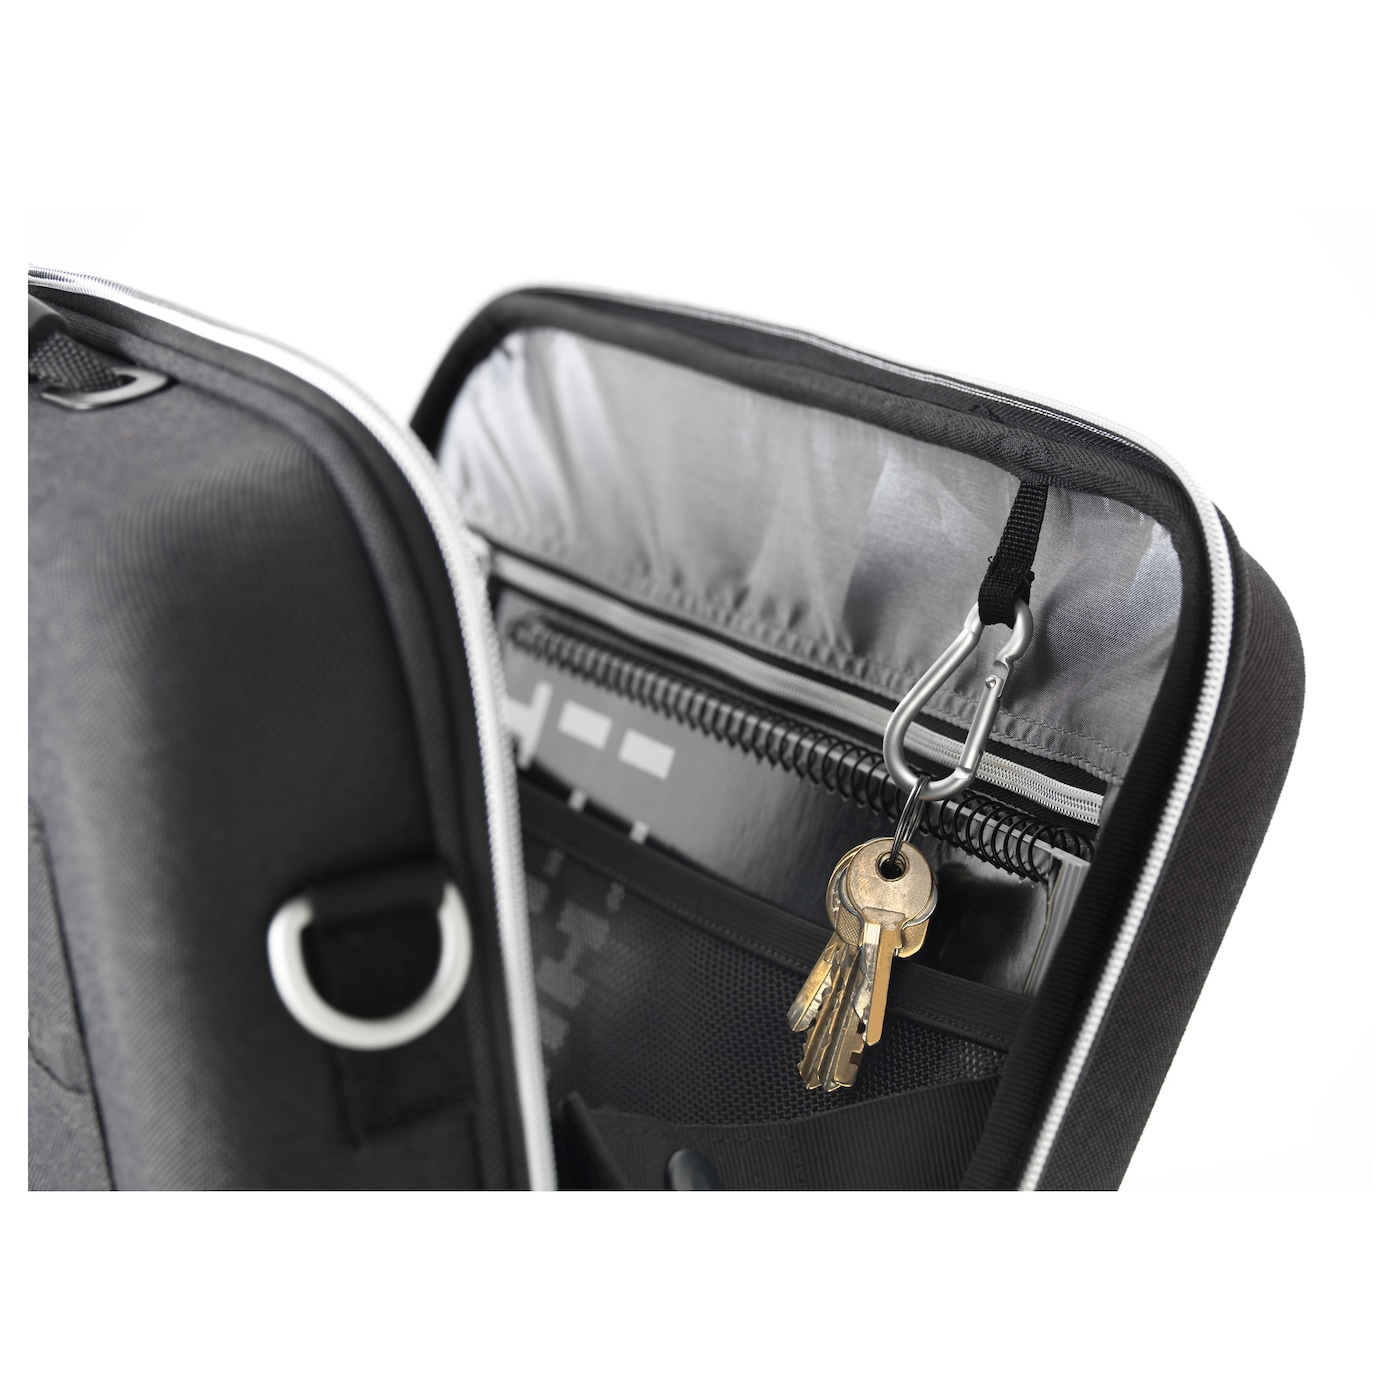 IKEA UPPTÄCKA briefcase Extra protection for your laptop in a separate padded compartment.